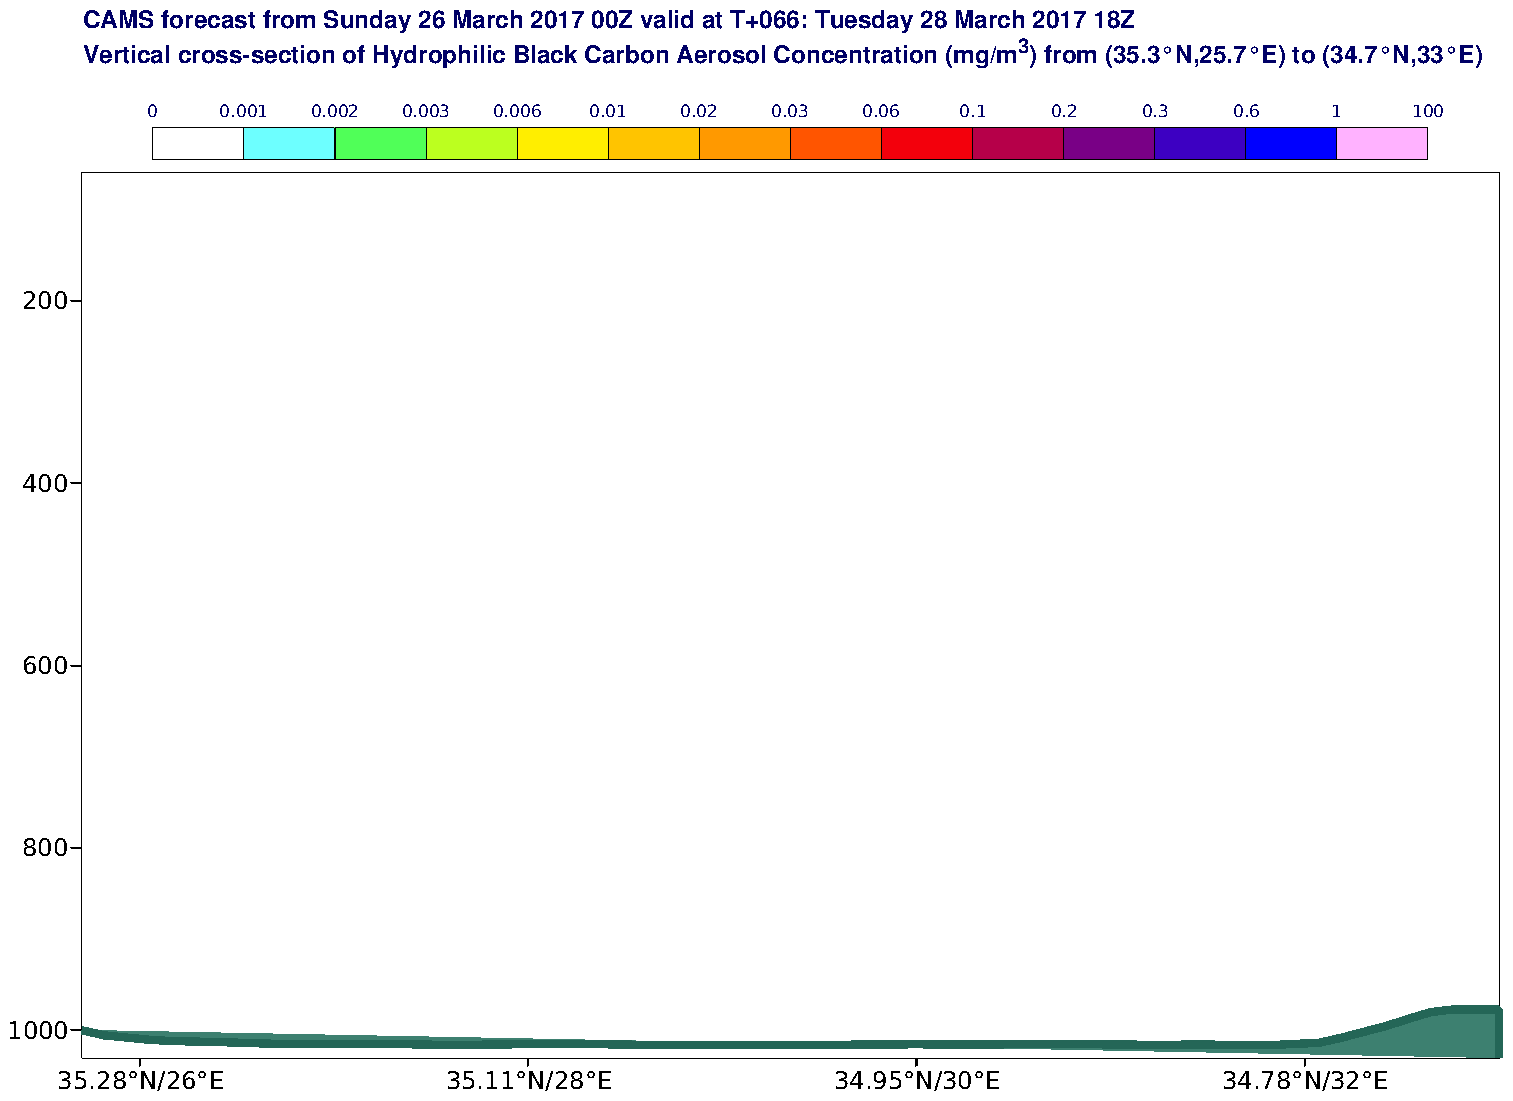 Vertical cross-section of Hydrophilic Black Carbon Aerosol Concentration (mg/m3) valid at T66 - 2017-03-28 18:00